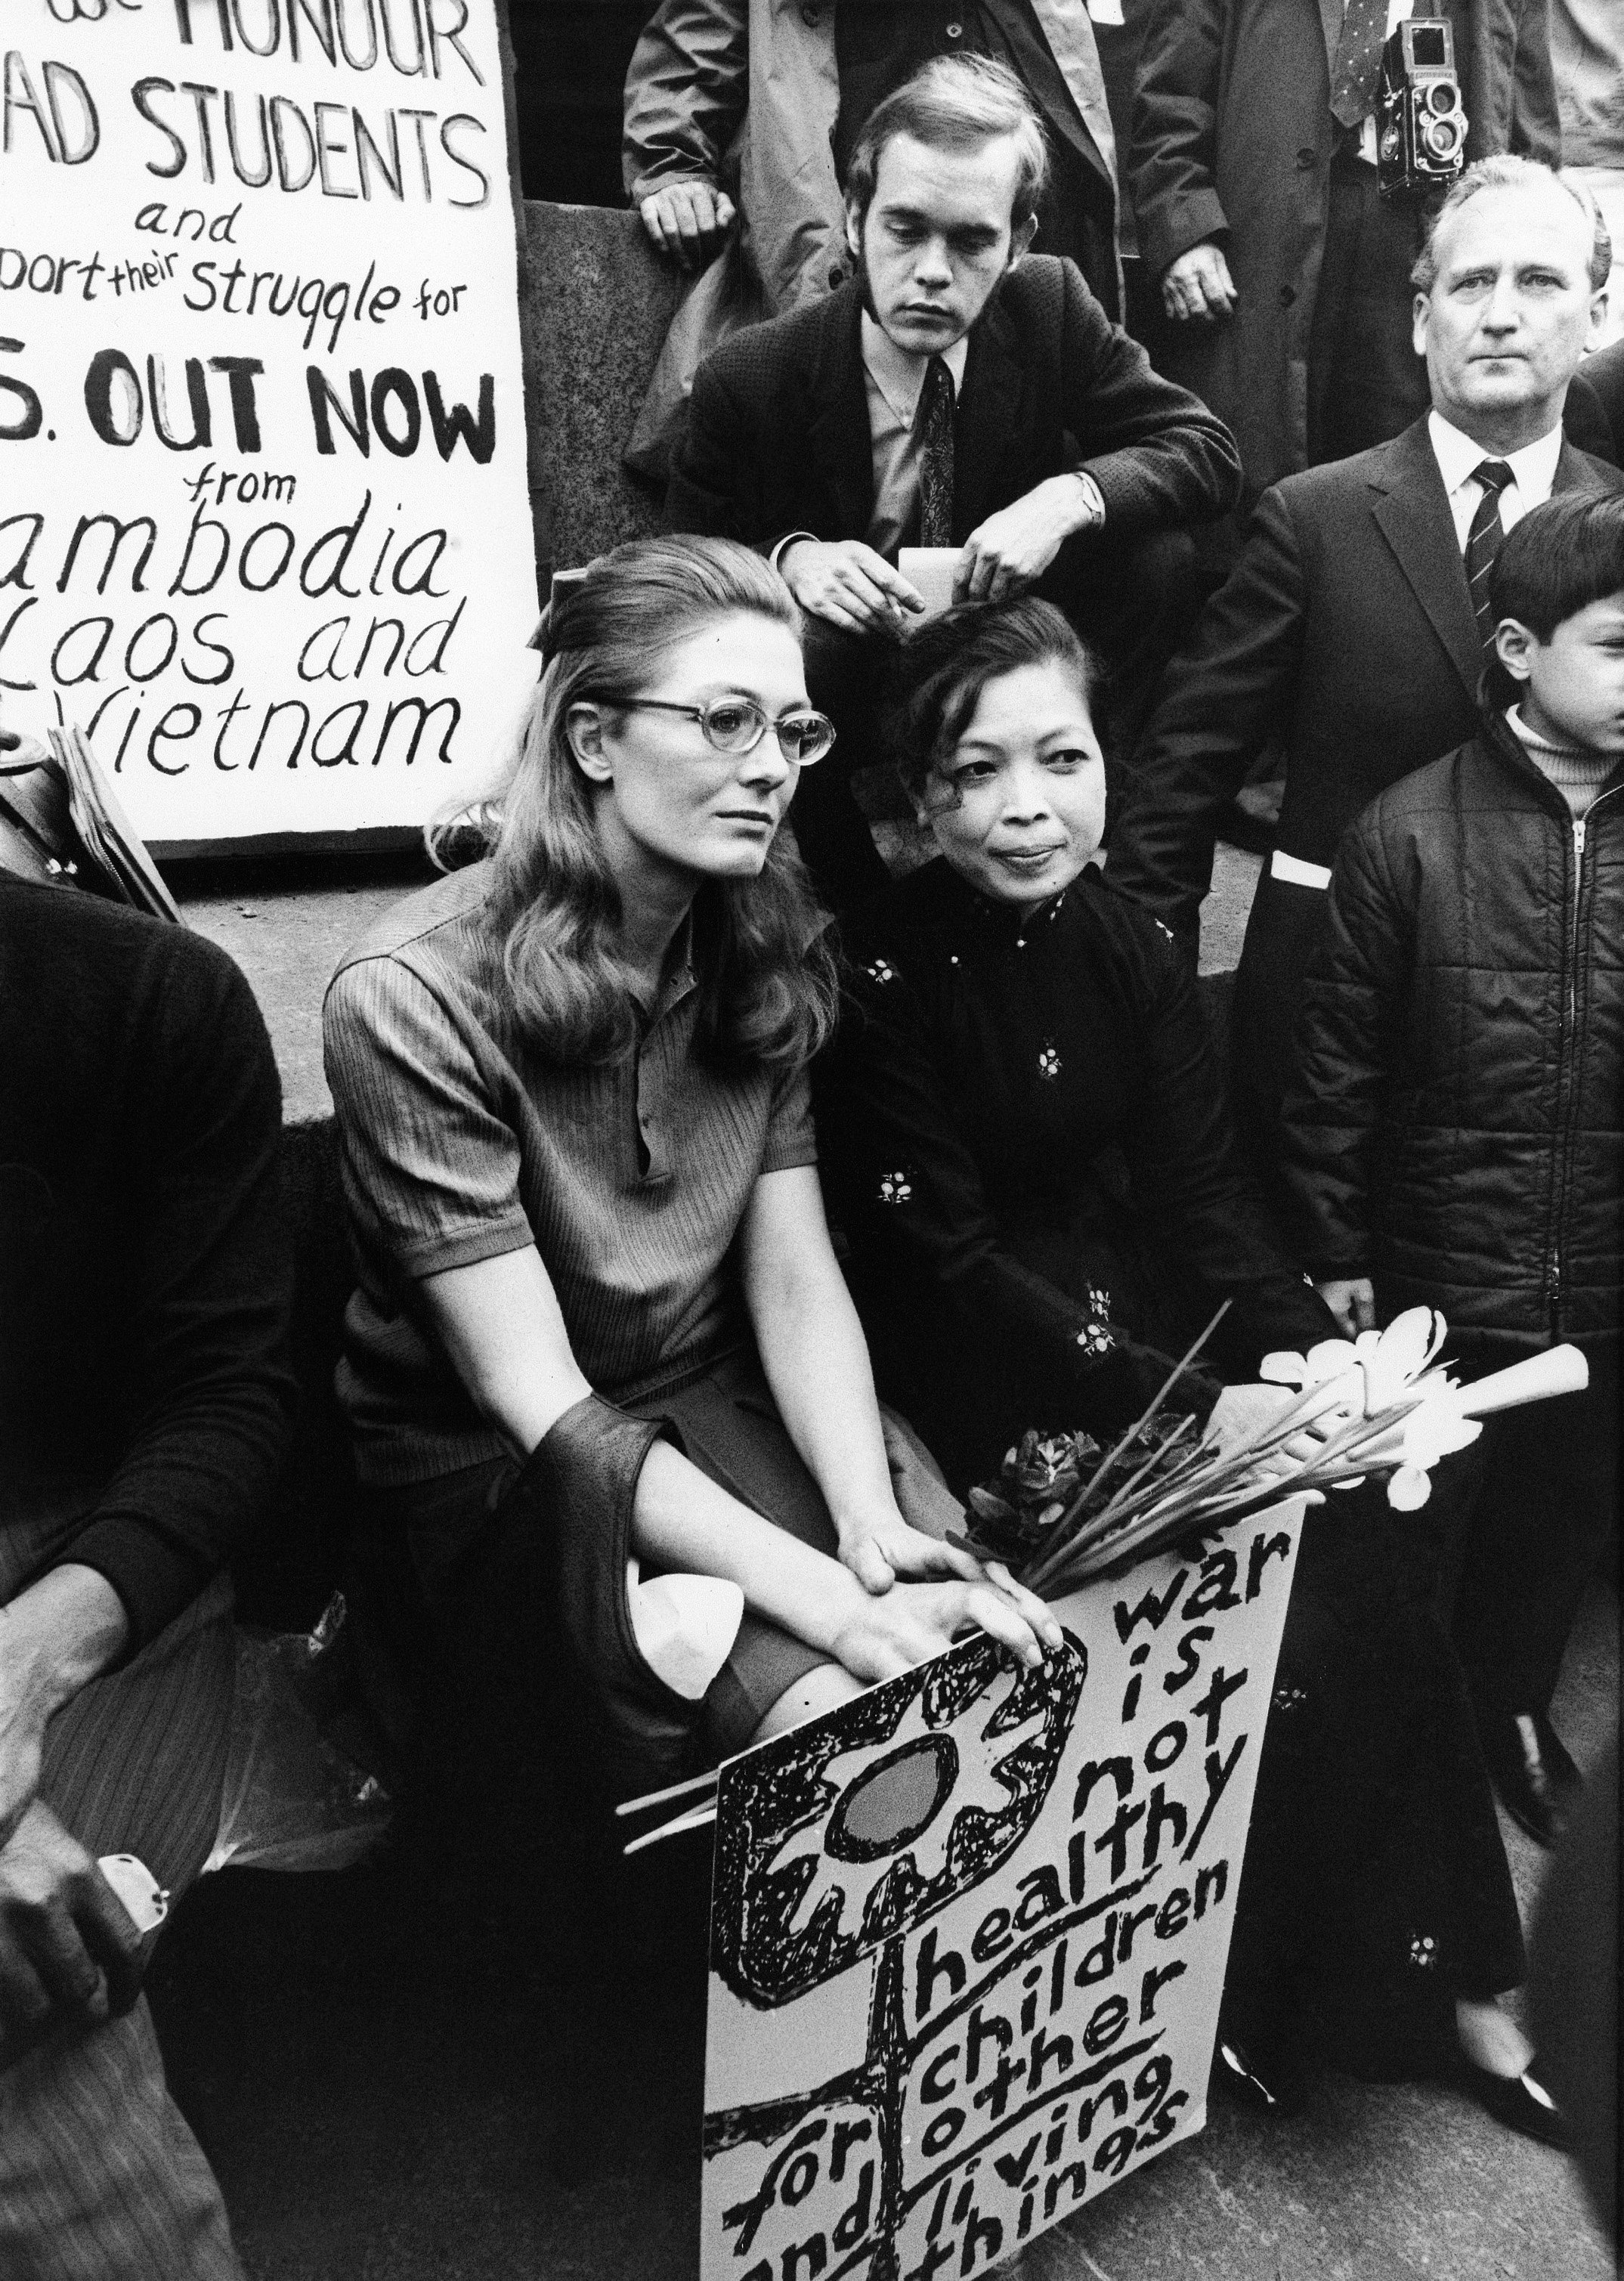 British actress Vanessa Redgrave, left, and Madame Lin Qui, wife of a Vietnamese journalist, are on a dais in Trafalgar Square, London, May 9, 1970, before leading a march to the United States Embassy in Grosvenor Square, in protest against United States involvement in Vietnam and Cambodia. (AP Photo)